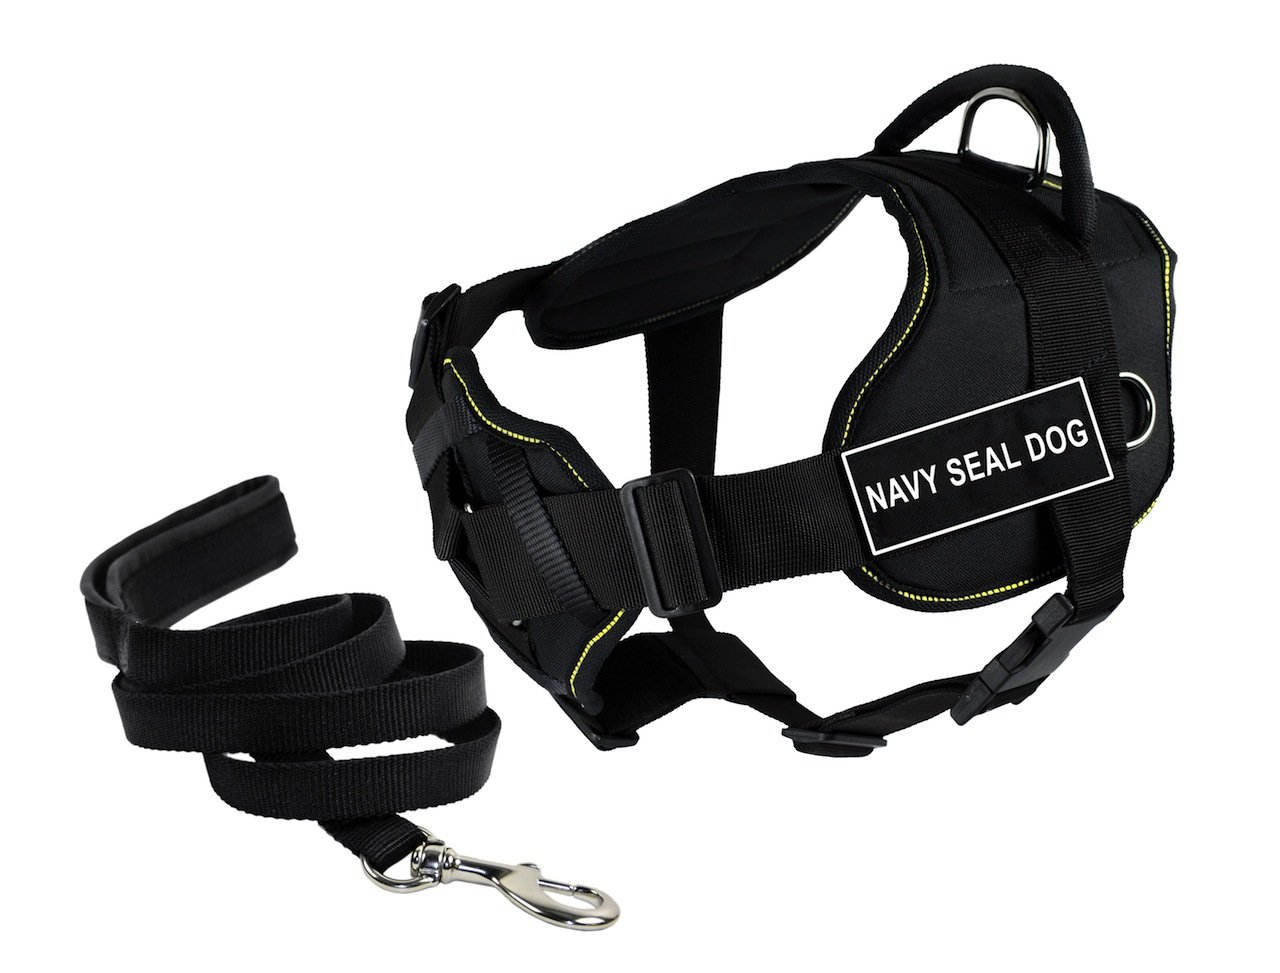 Dean & Tyler's DT Fun Chest Support NAVY SEAL DOG Harness, Small, with 6 ft Padded Puppy Leash.